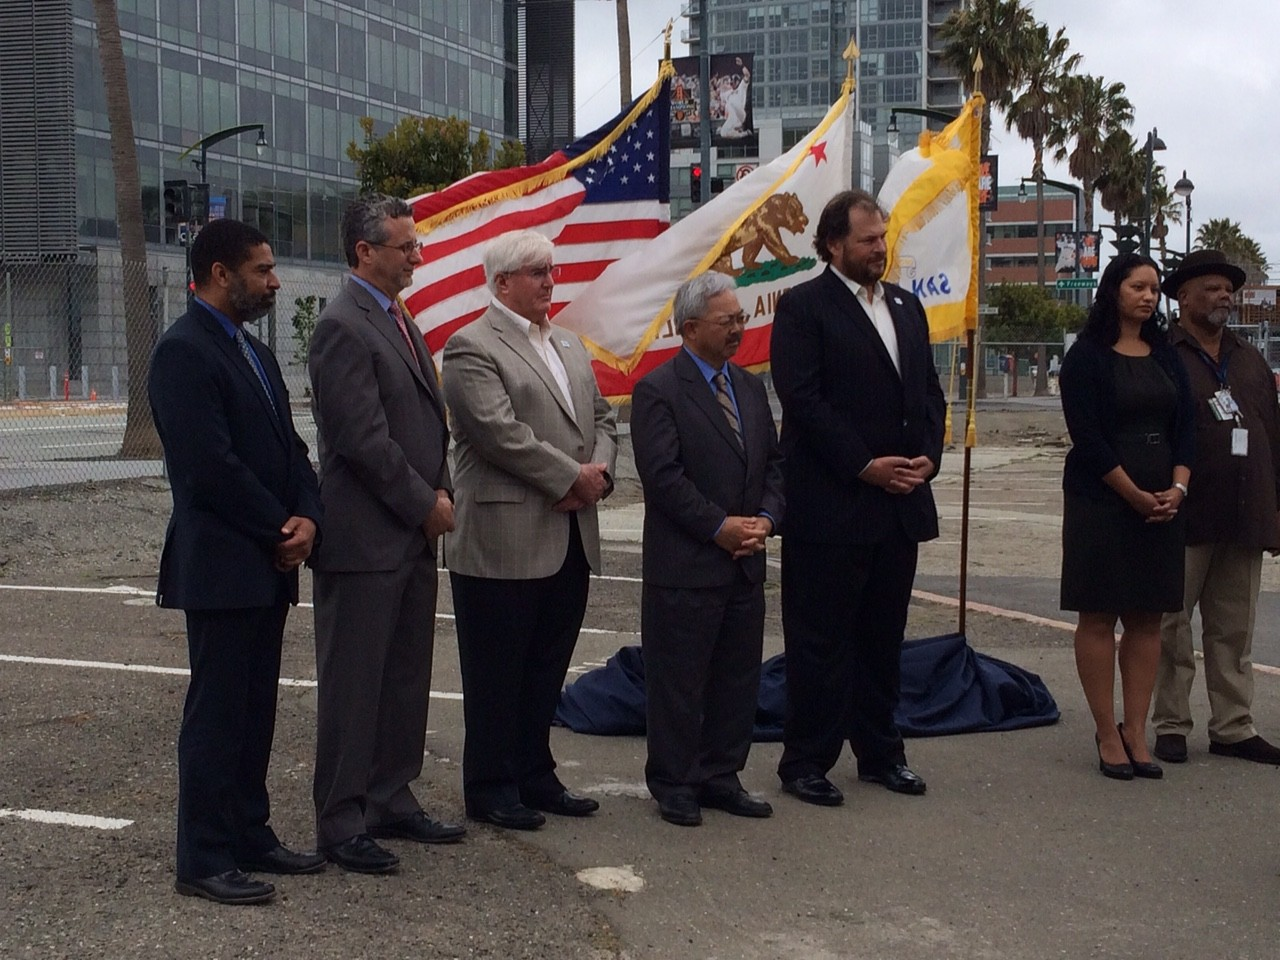 Tech Leaders Give $5M to Build 100 New Apartments in Mission Bay to House Homeless Veterans